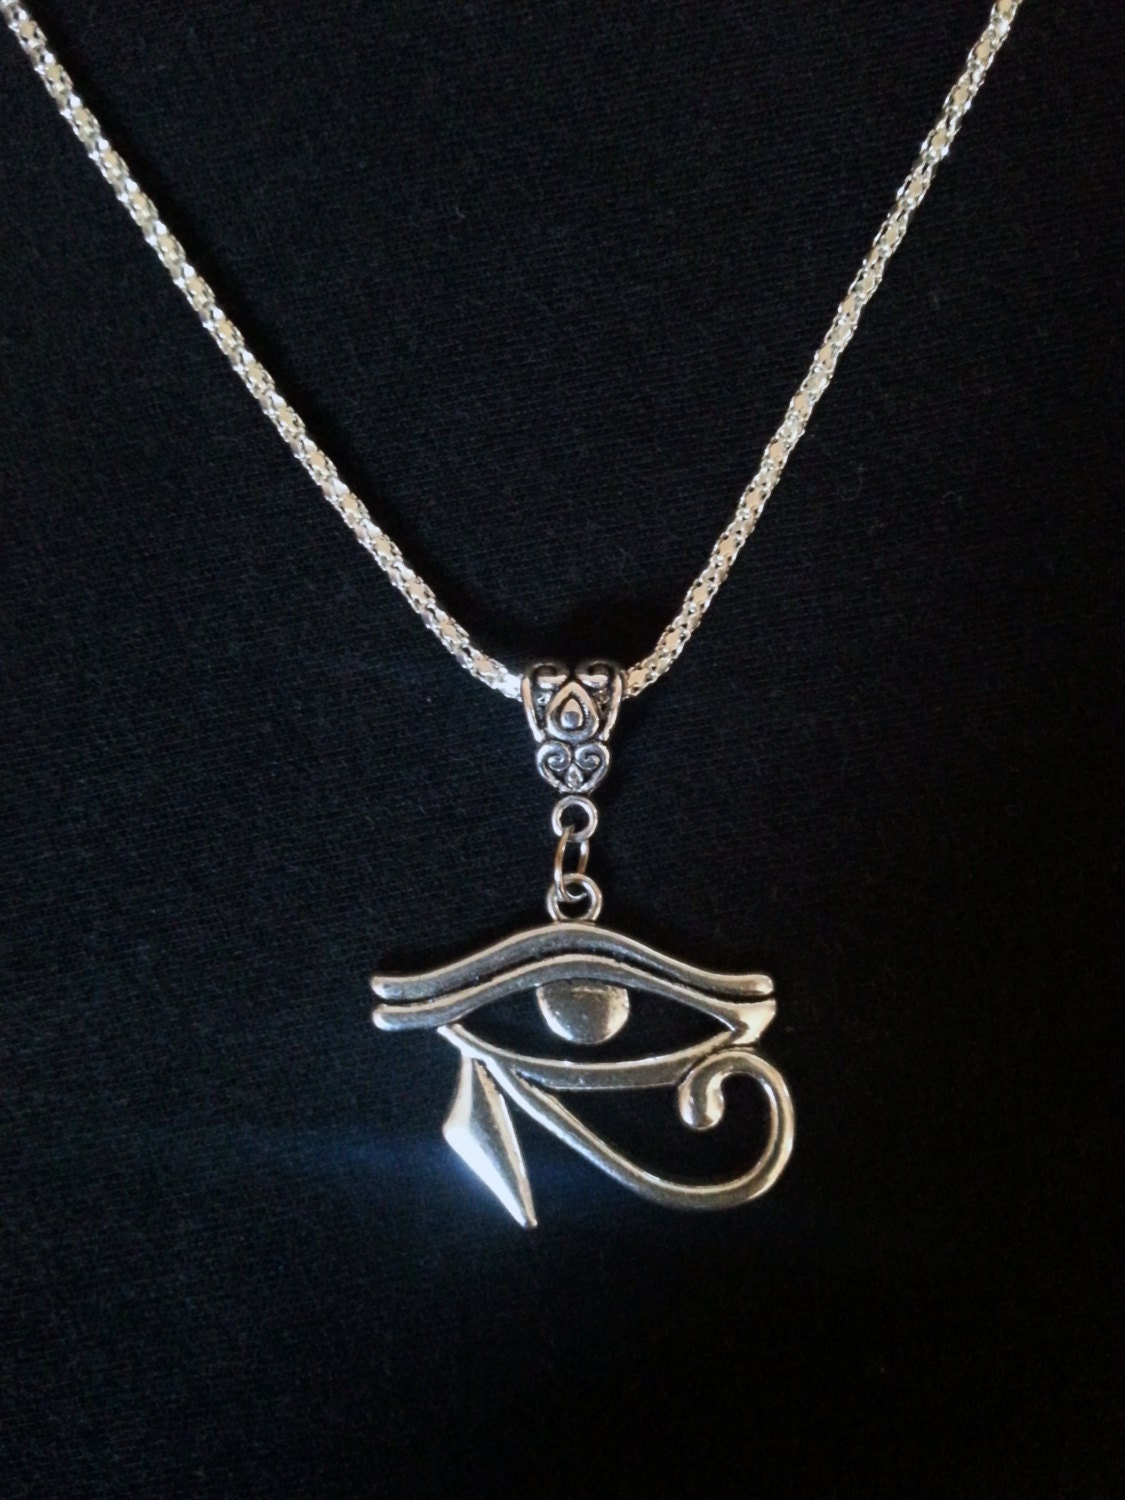 eye of horus necklace by steelrosejewelry on etsy